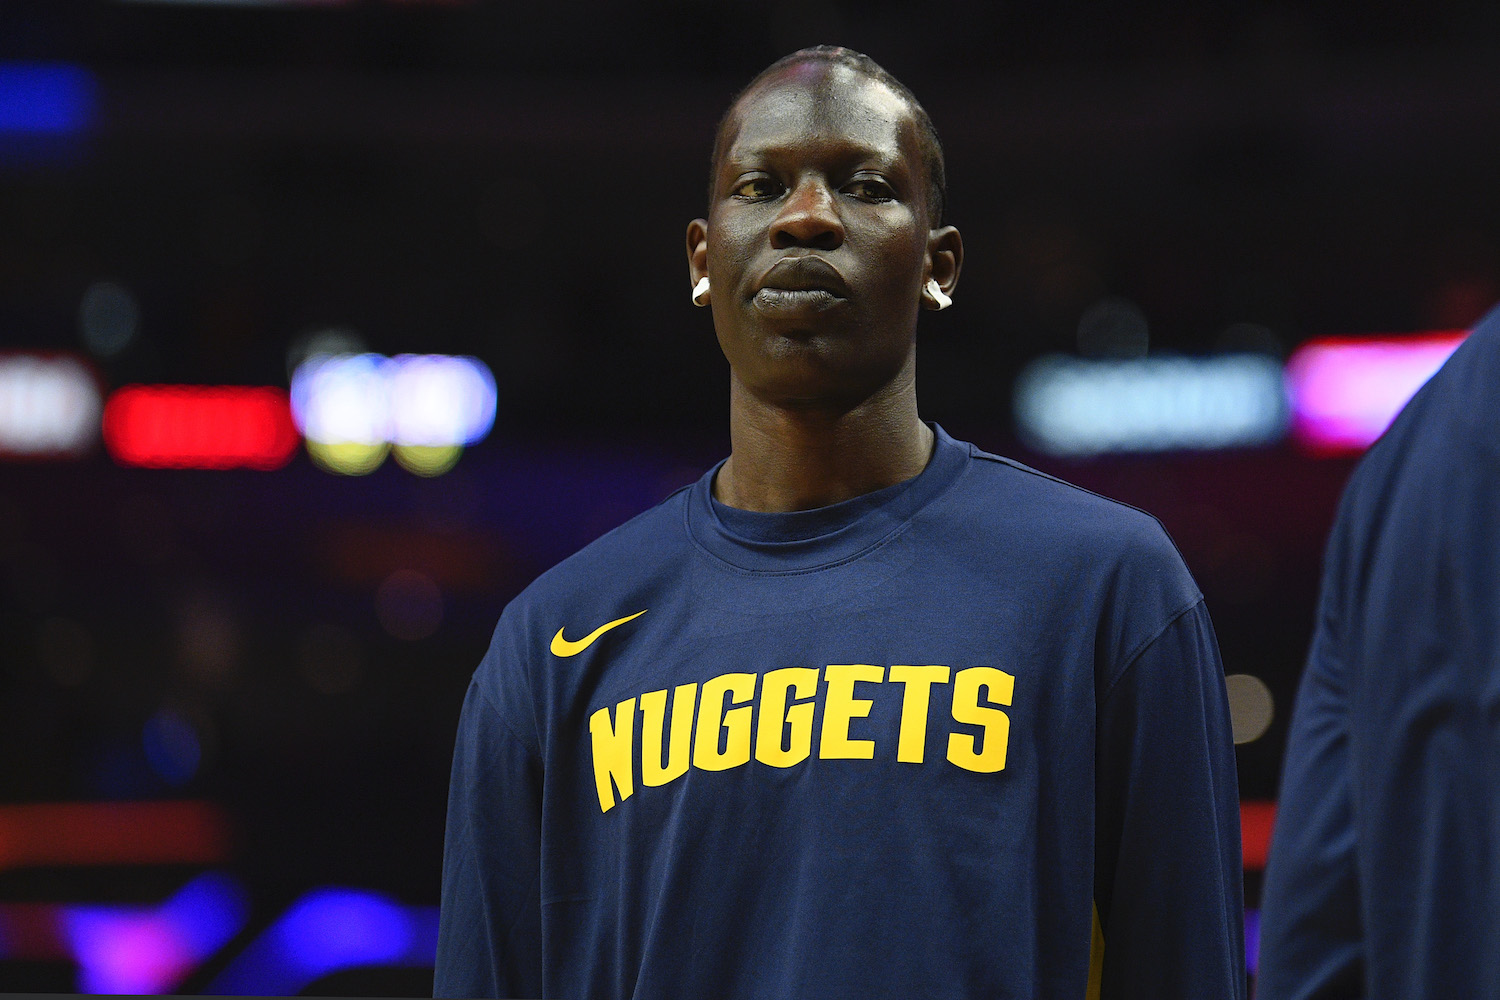 Bol Bol Is Manute Bol with Offensive Skills and a Major Chip on His Shoulder